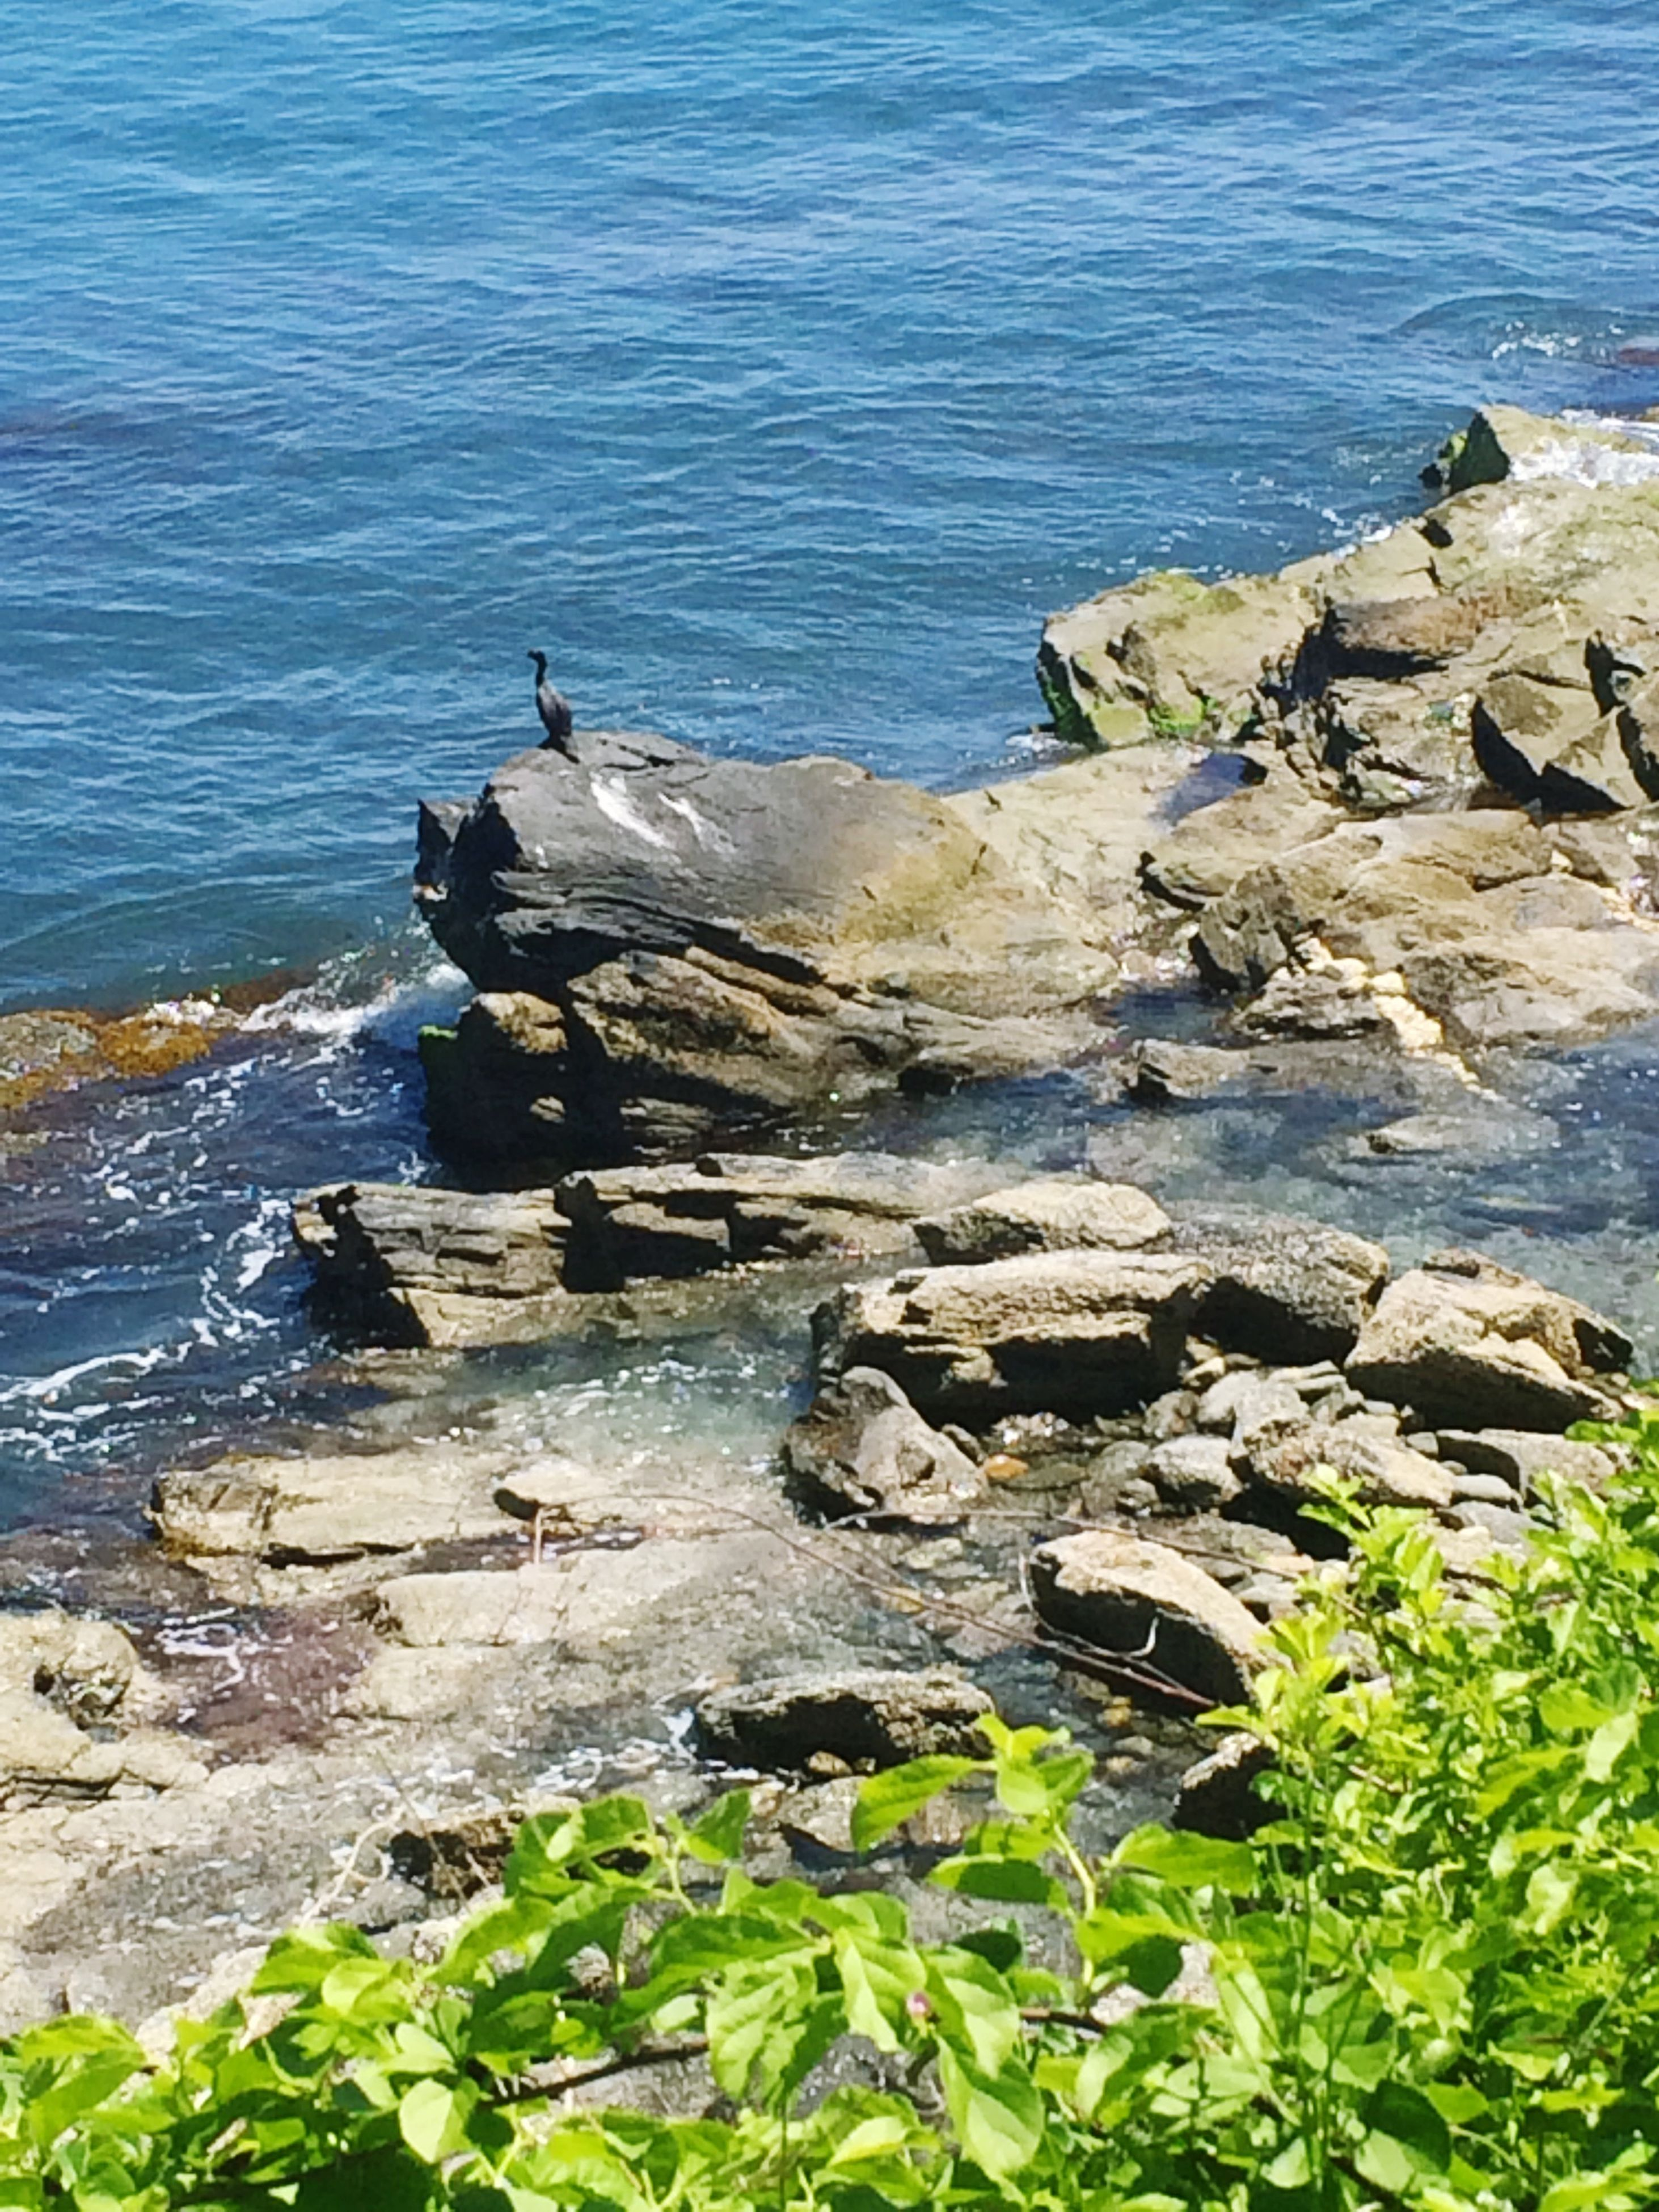 water, sea, rock - object, tranquility, tranquil scene, scenics, beauty in nature, nature, rock, rock formation, shore, high angle view, idyllic, stone, coastline, plant, horizon over water, beach, day, blue